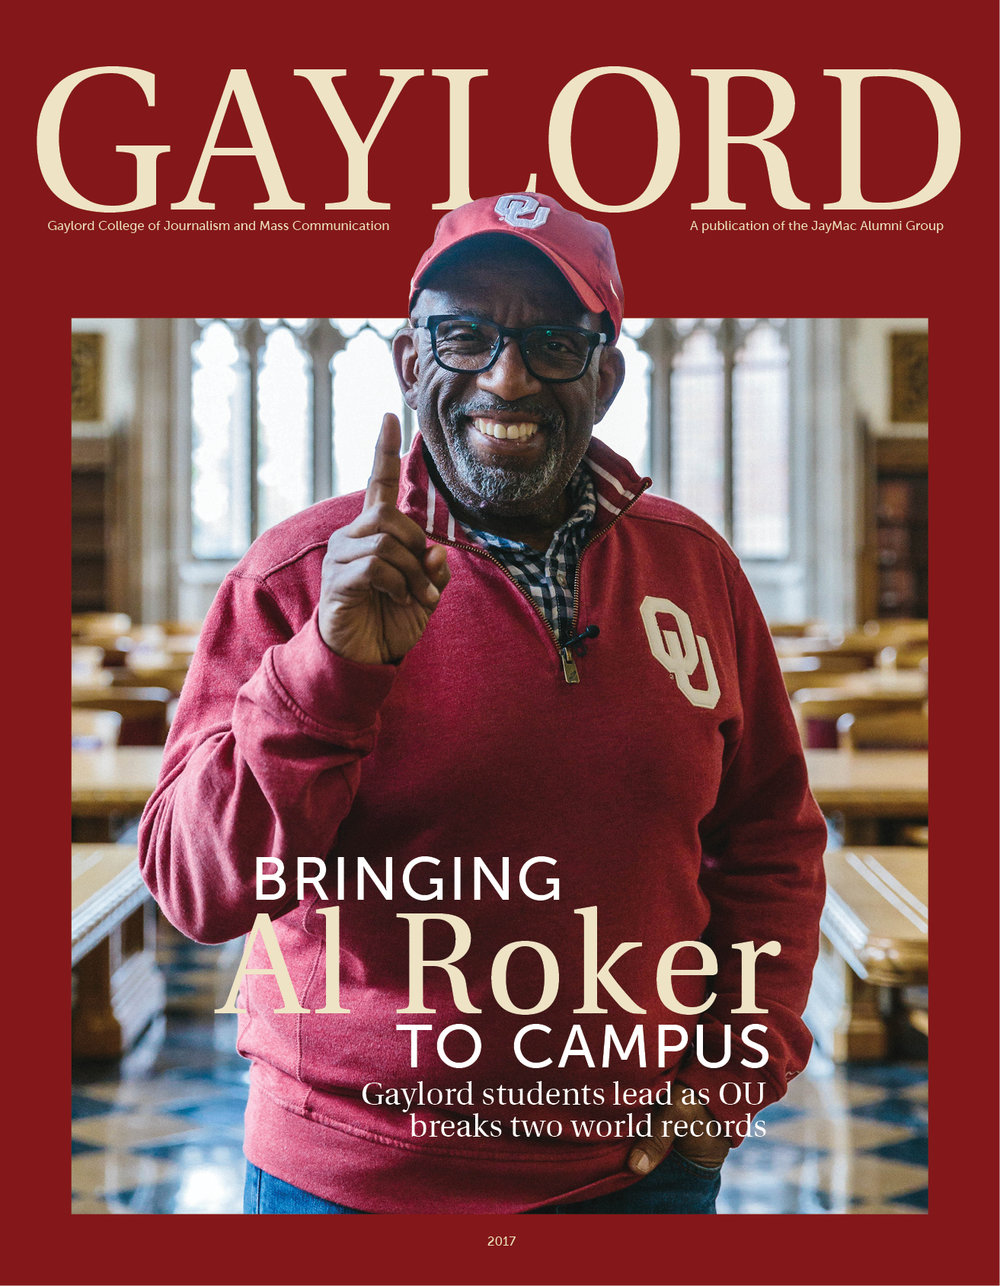 Published for Gaylord School of Journalism and Mass Communication at the University of Oklahoma